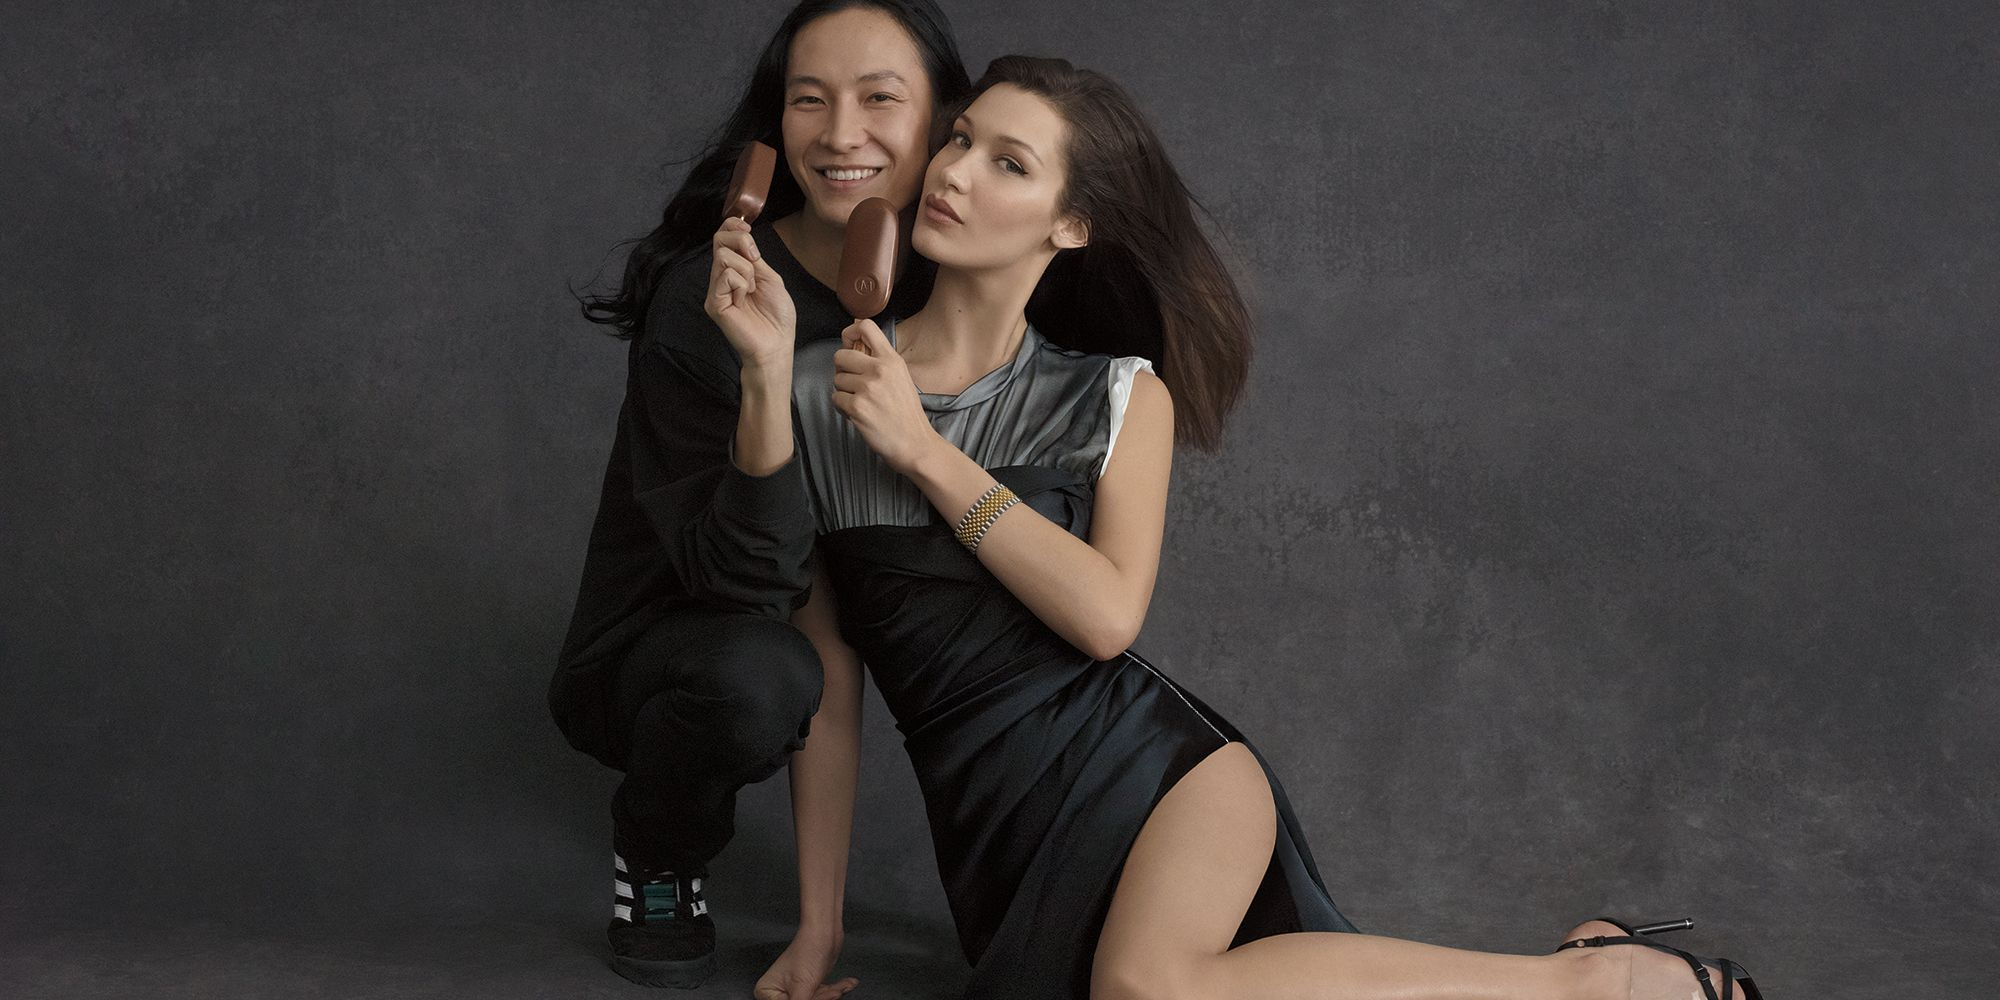 a341d31f7344 Bella Hadid and Alexander Wang Star in Campaign For Magnum Ice Cream Bars